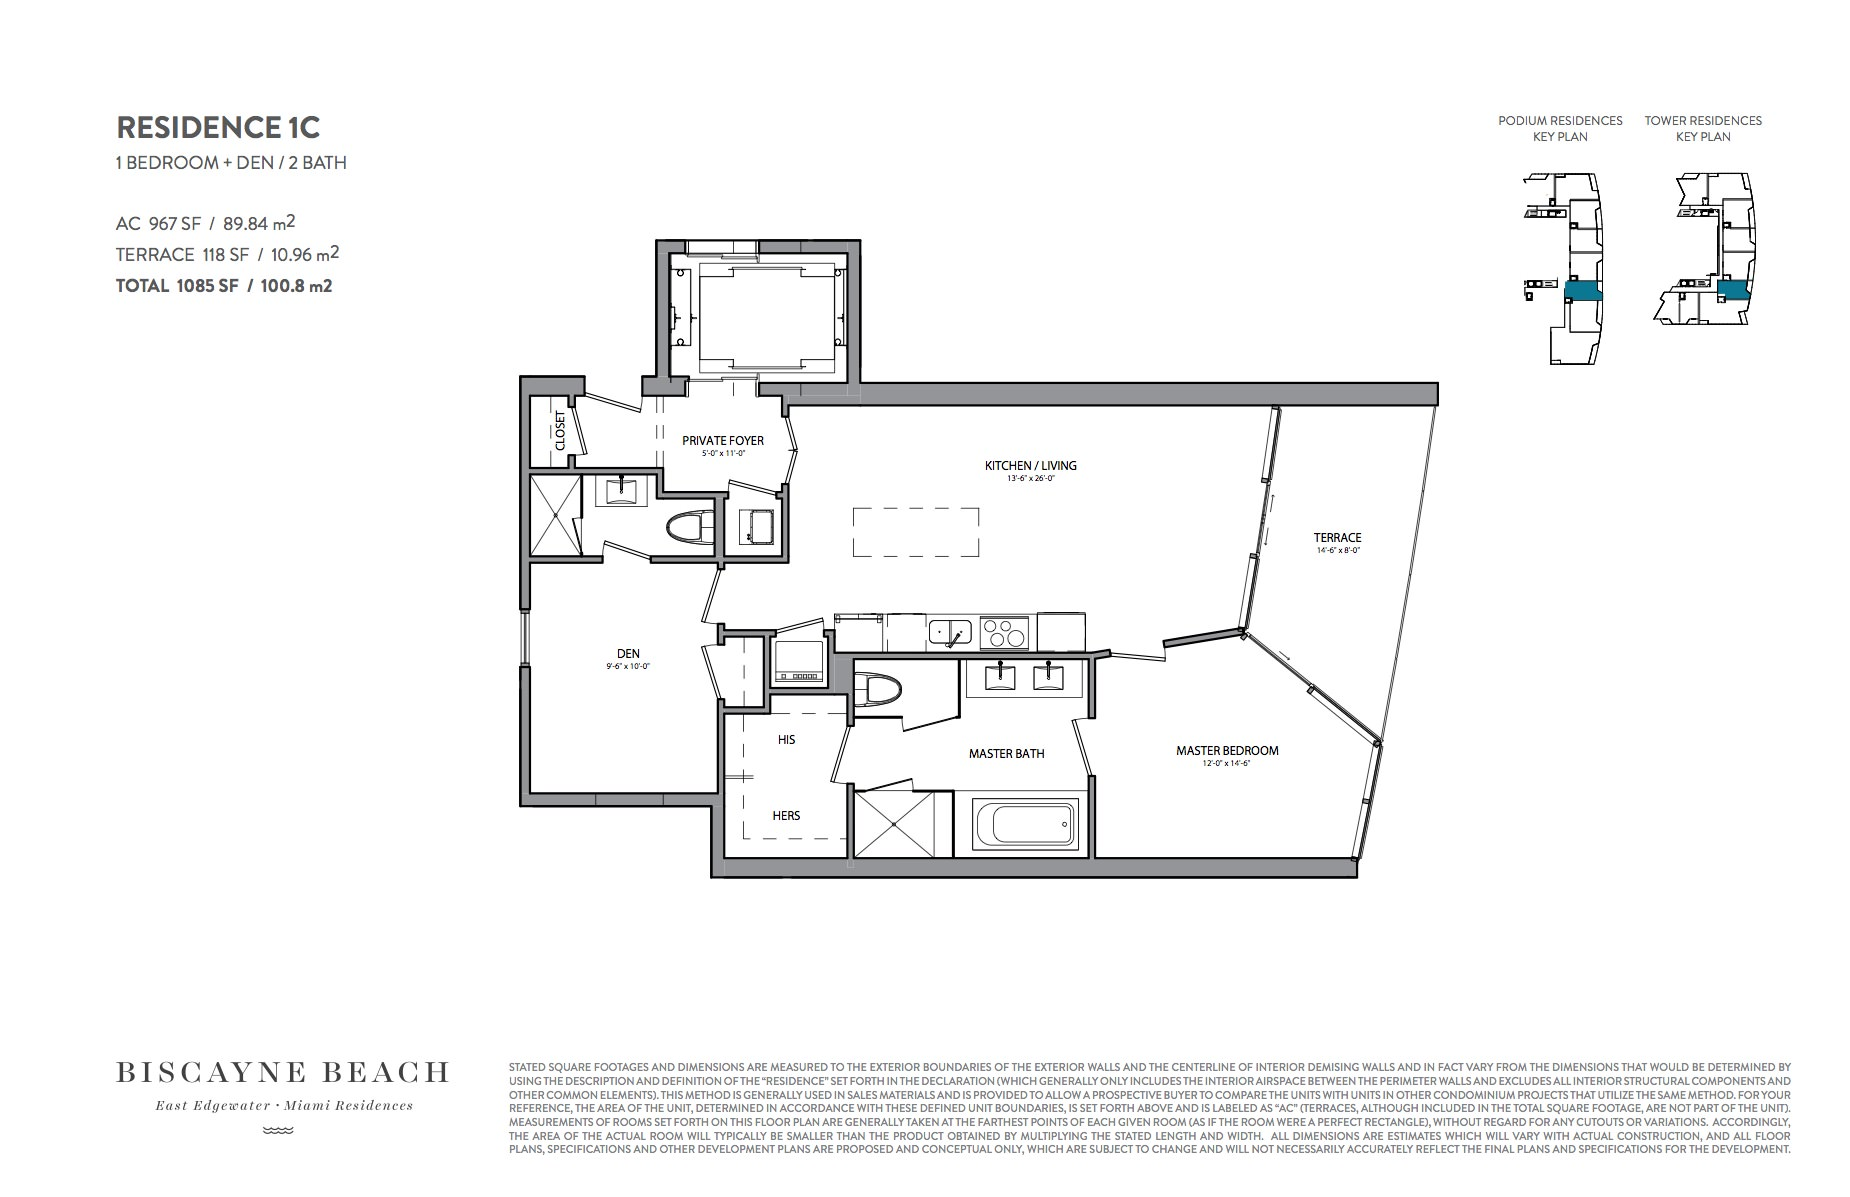 Biscayne beach condos 701 ne 29 st for Floor plans 900 biscayne